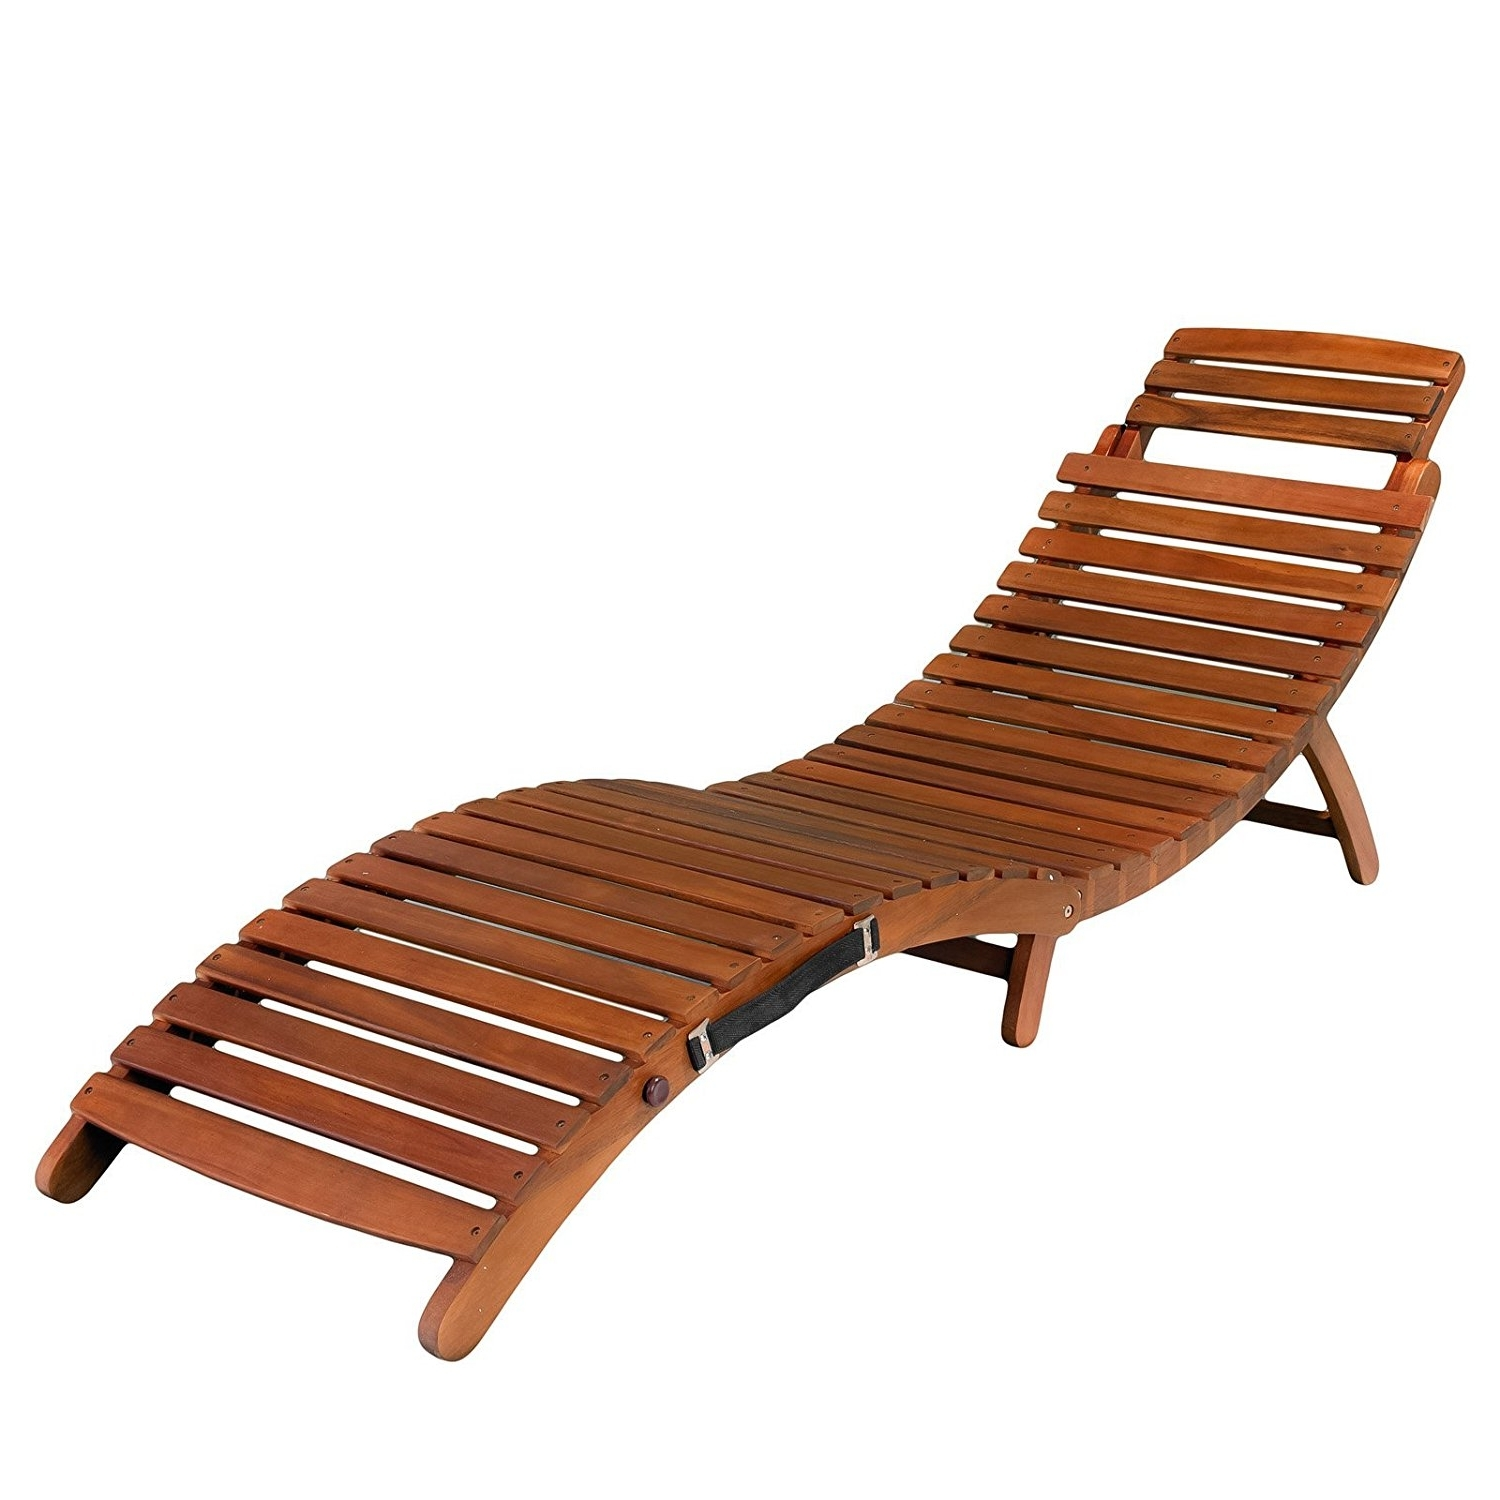 Current Outdoor Folding Chaise Lounges Intended For Amazon: Lahaina Outdoor Chaise Lounge: Garden & Outdoor (View 9 of 15)